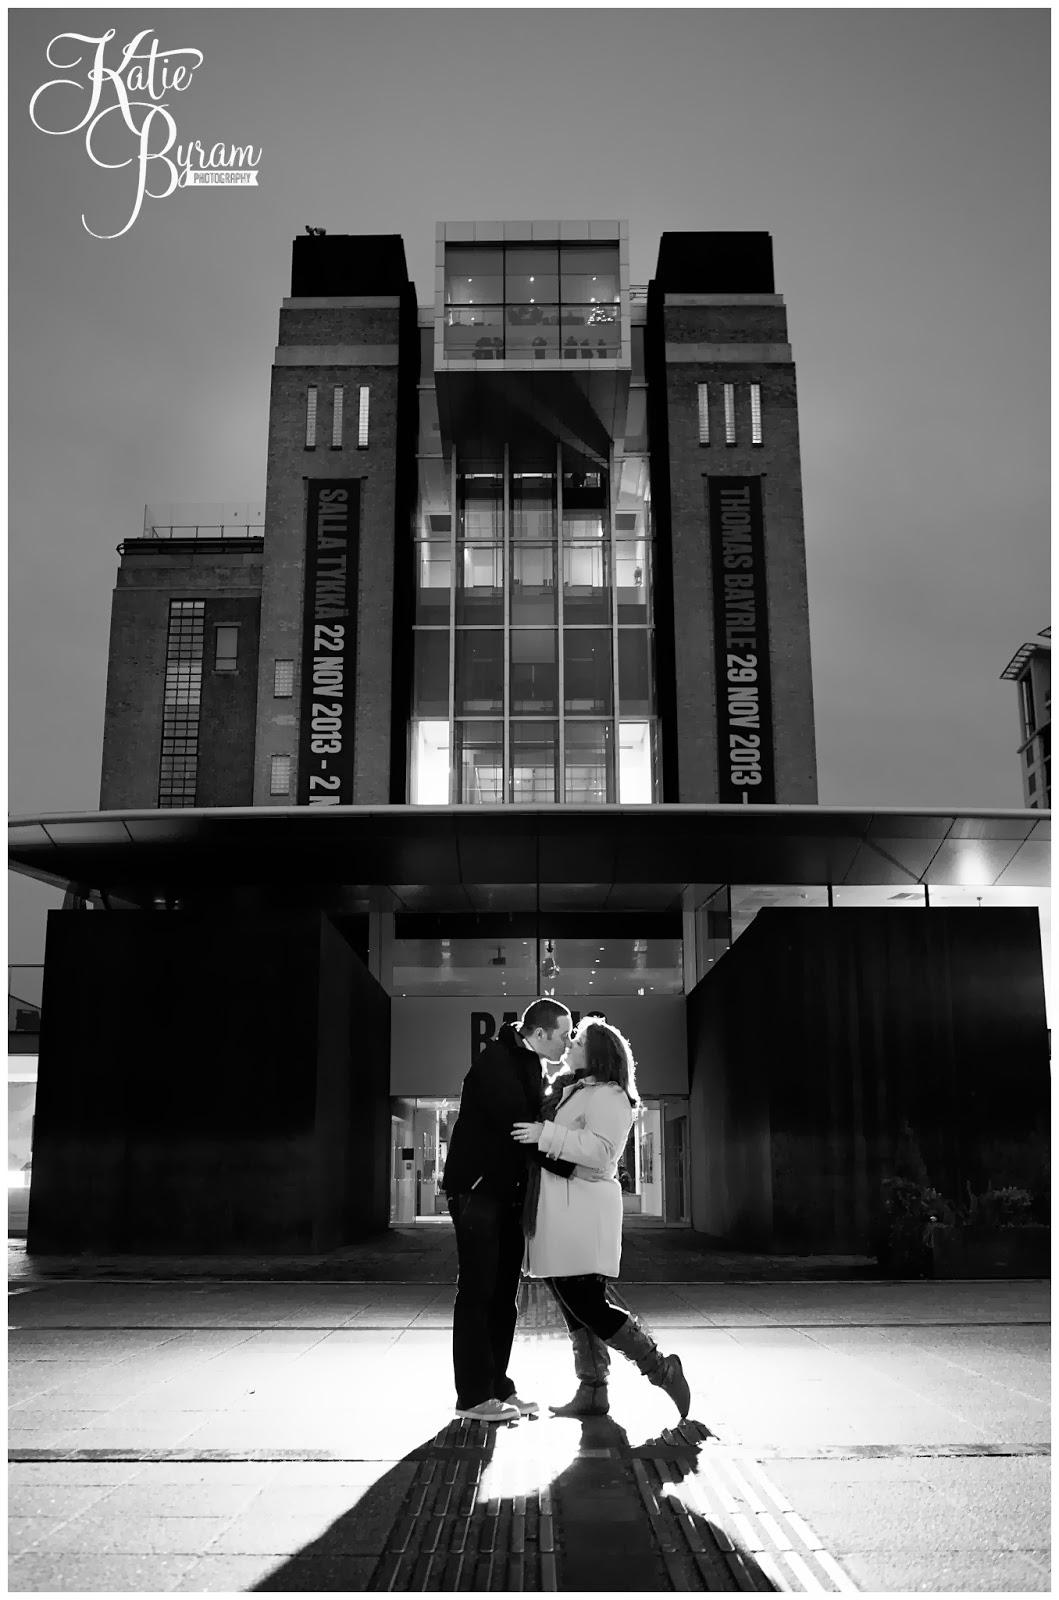 night time engagement shoot, newcastle quayside engagement, newcastle pre-wedding shoot, newcastle quayside portraits, tyne bride engagement, christmas in newcastle, fenwicks window, millenium bridge engagement, pitcher and piano newcastle, olive and bean cafe, the baltic wedding, newcastle wedding photographer, katie byram photography